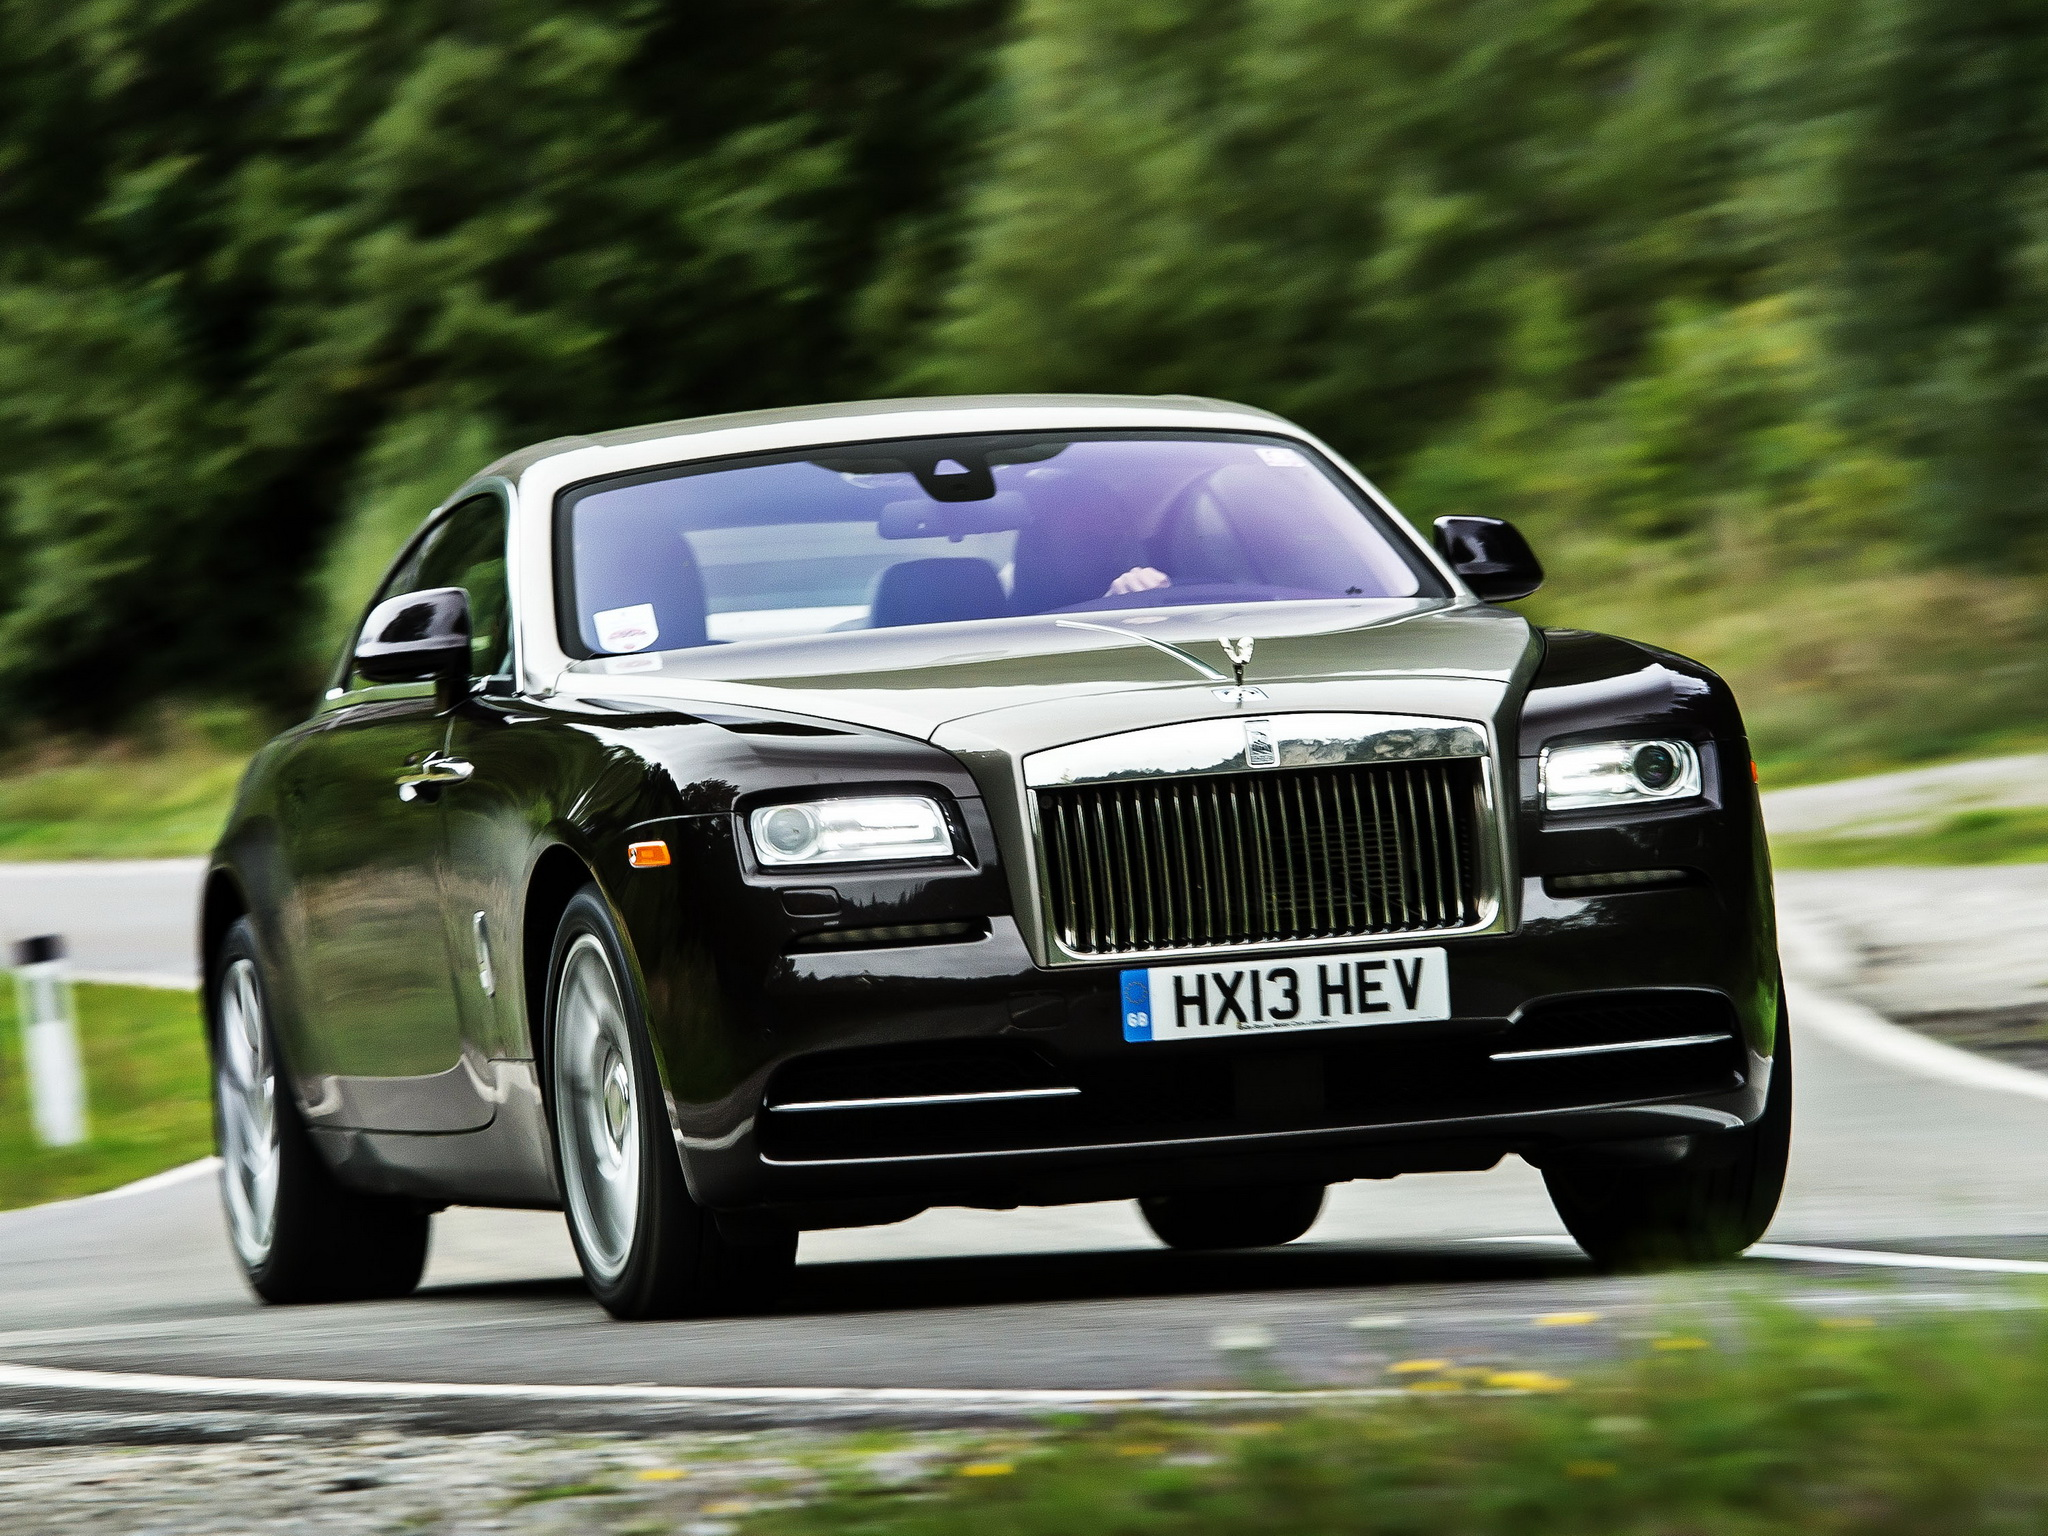 2013 Rolls Royce Wraith Luxury Supercar Rg Wallpaper